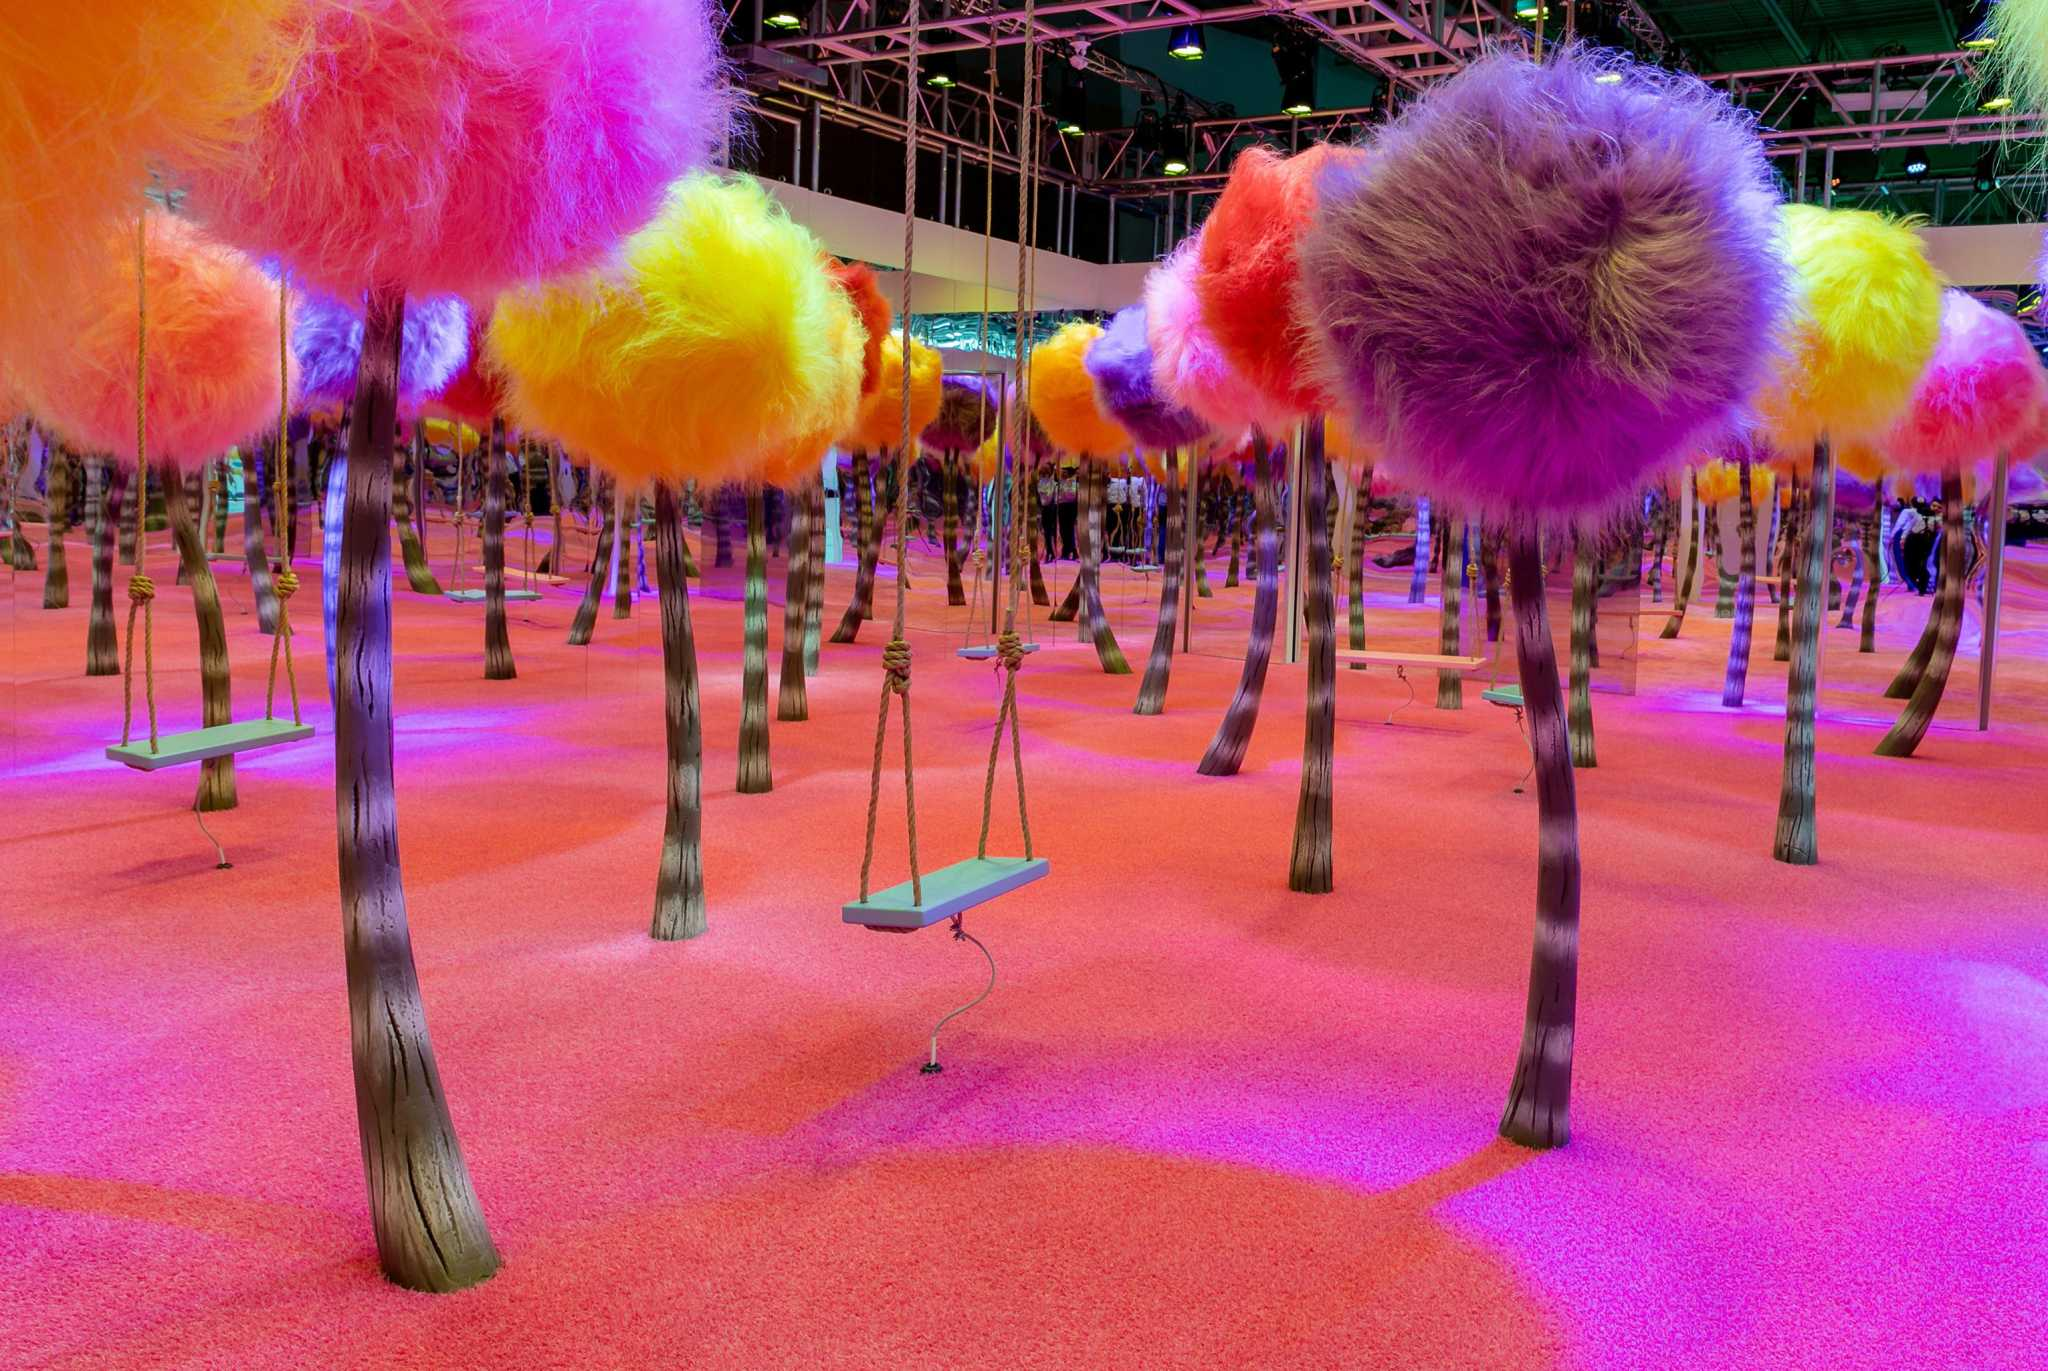 Horton Hears a Houston!: A Dr. Seuss experience is coming to town